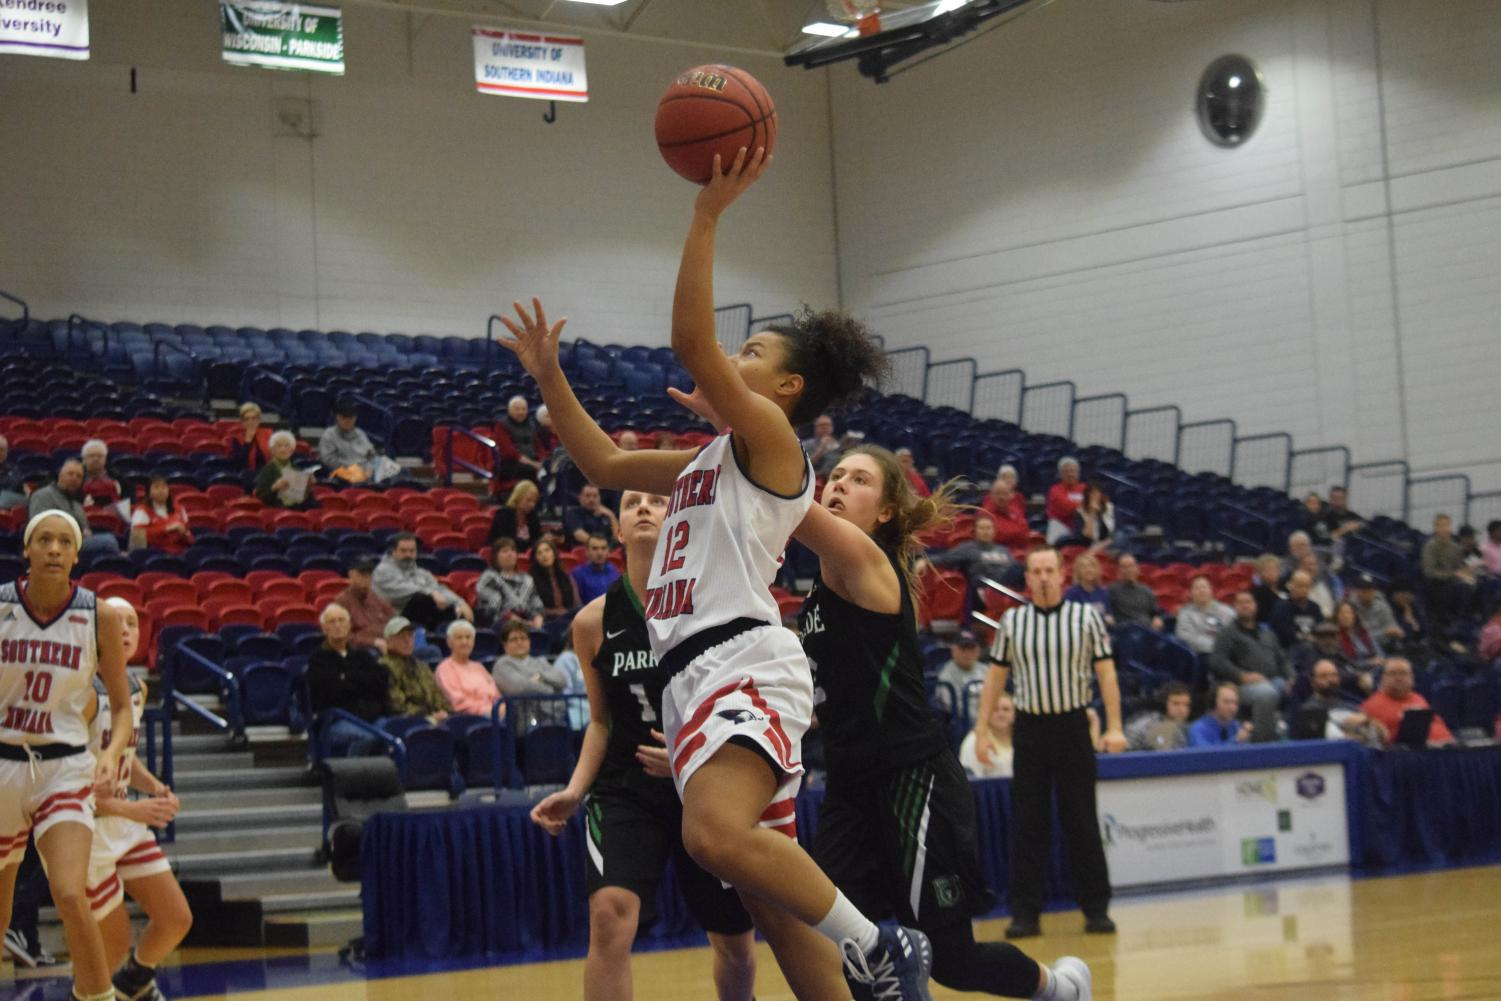 Ashley+Johnson%2C+sophomore+guard%2C+gets+into+the+paint+for+a+layup